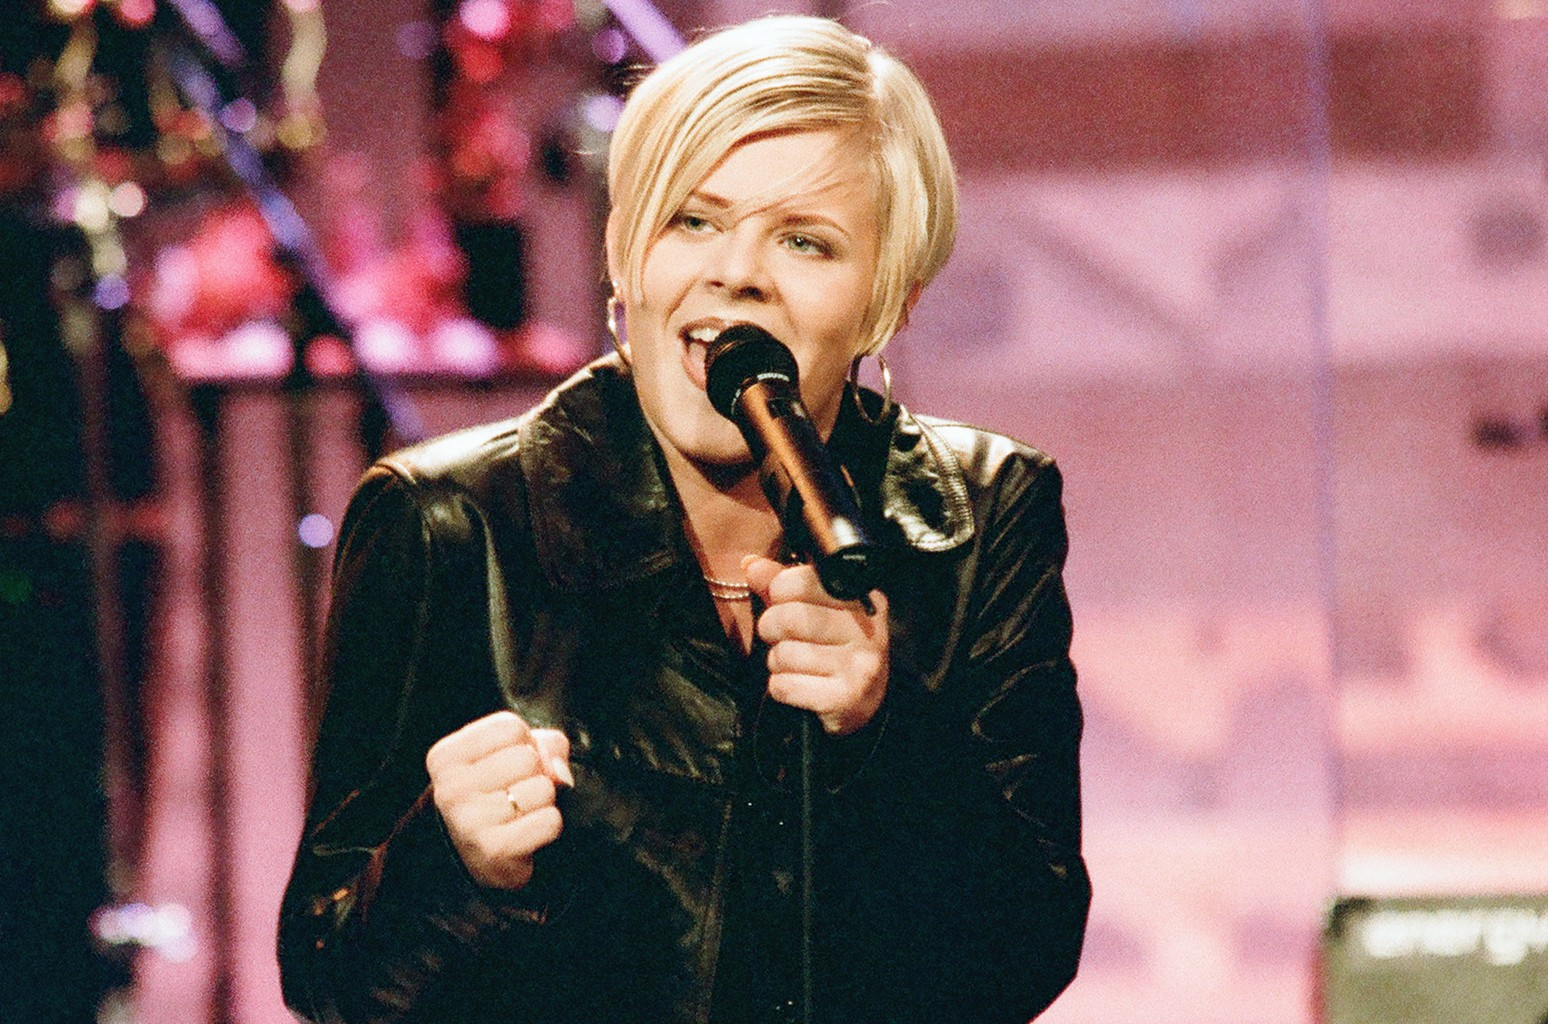 Robyn performs on The Tonight Show with Jay Leno on Aug. 13, 1997.